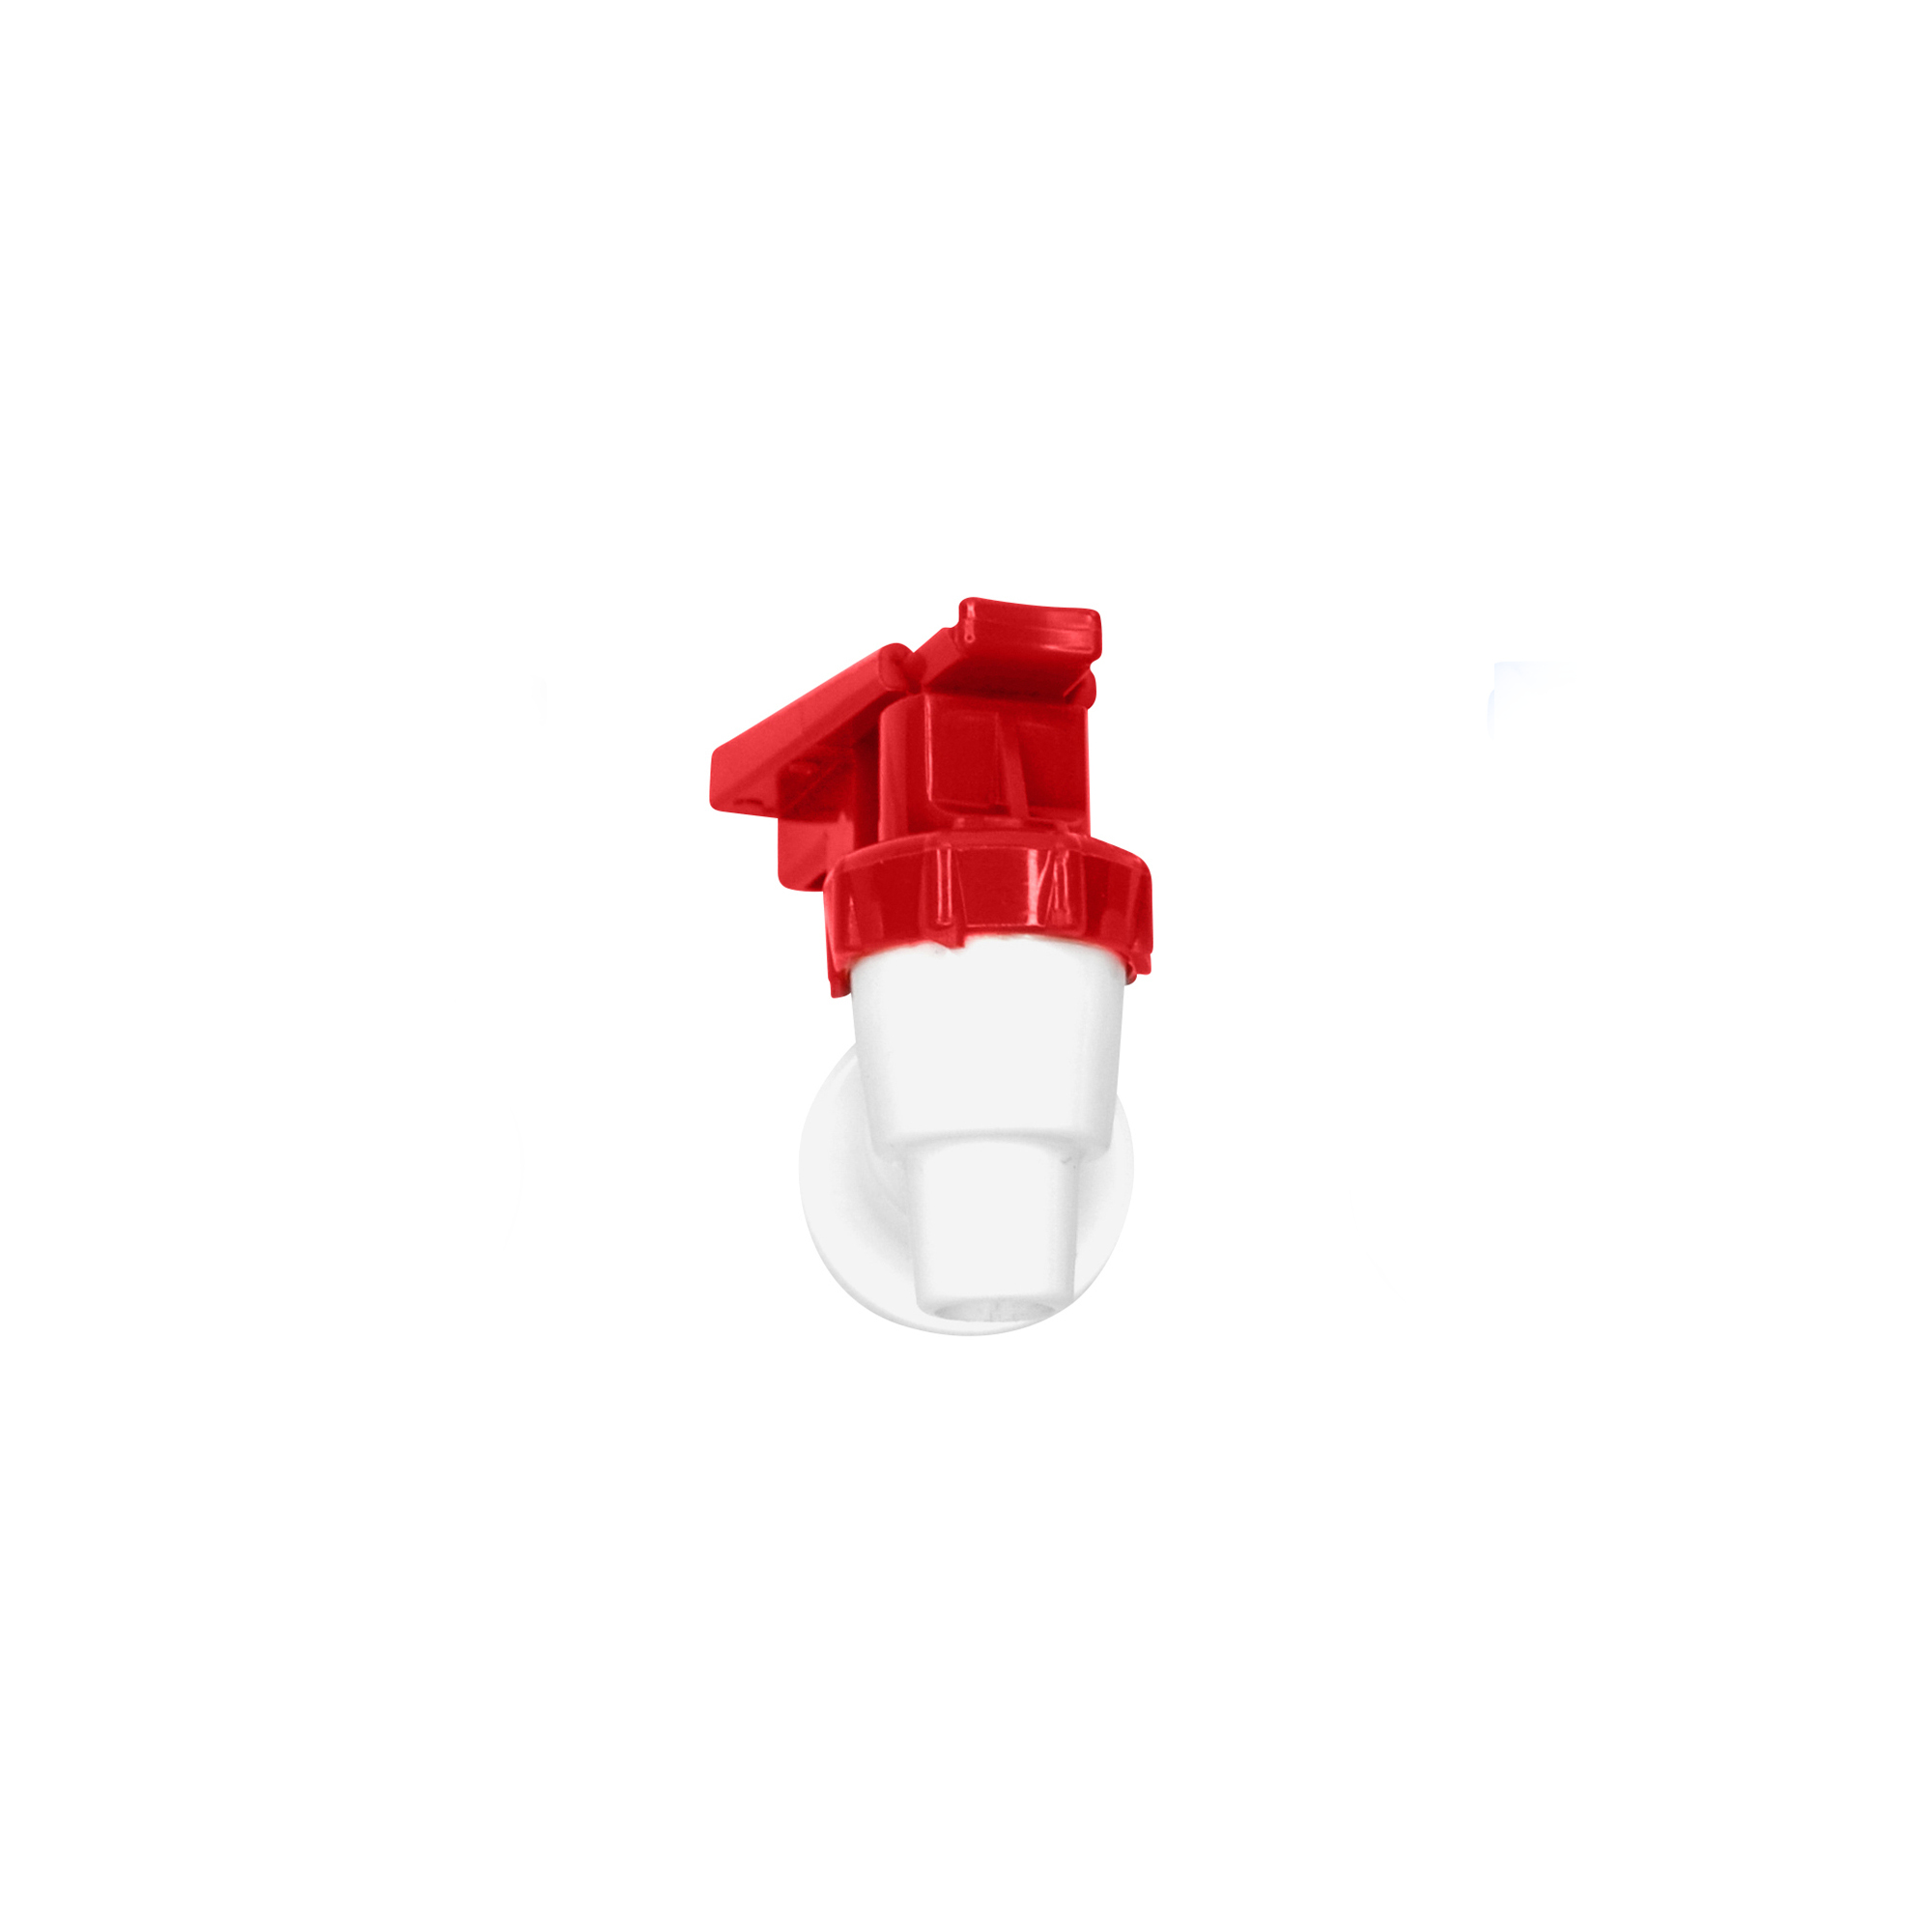 Tomlinson 1009470 White Cooler Replacement Faucet - Red Touch Guard ...